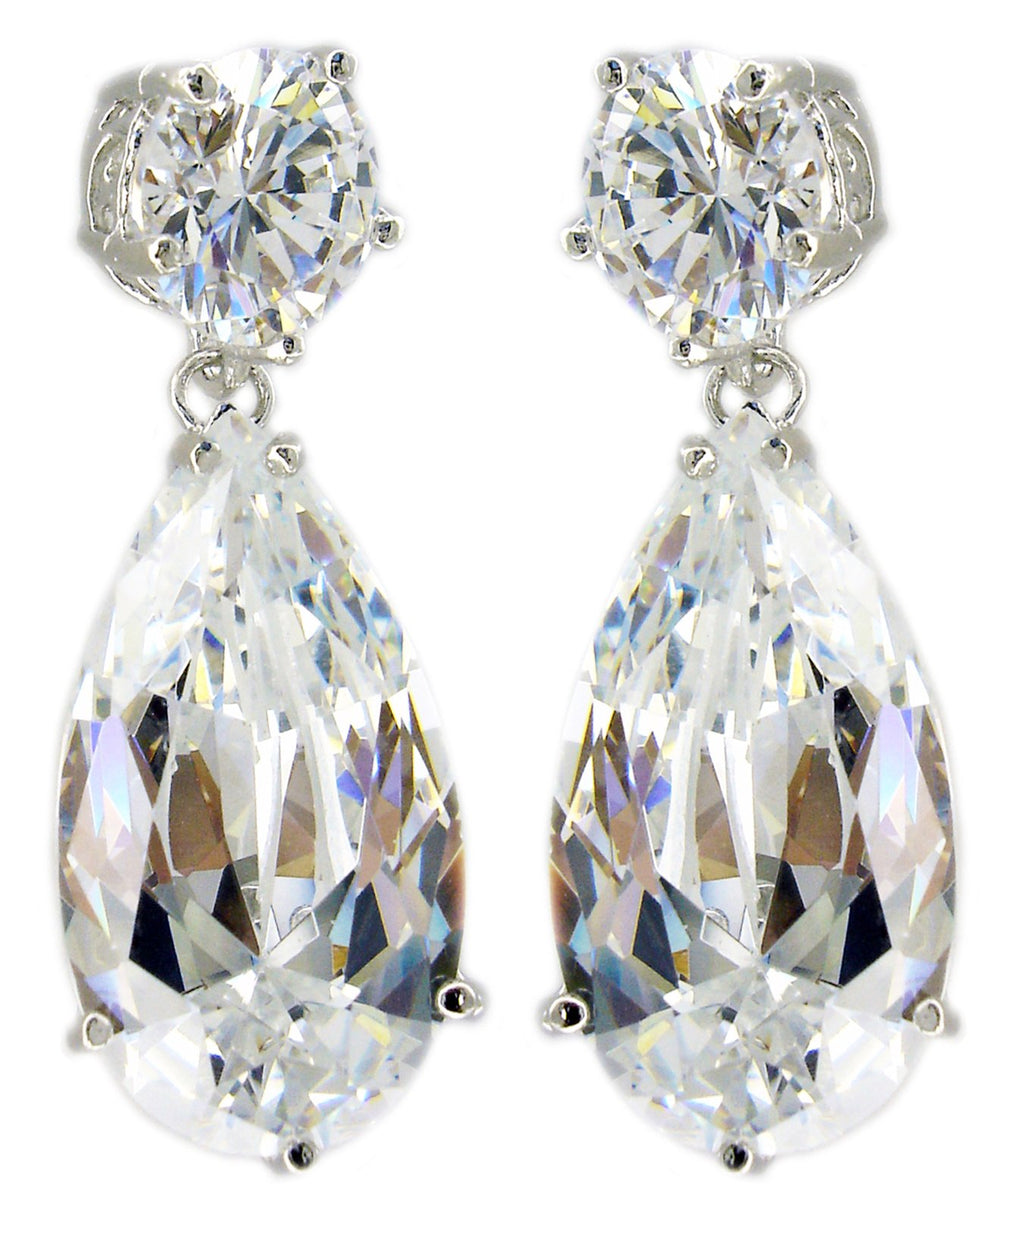 Top Round Cz Earring Tear Drop Color Cz